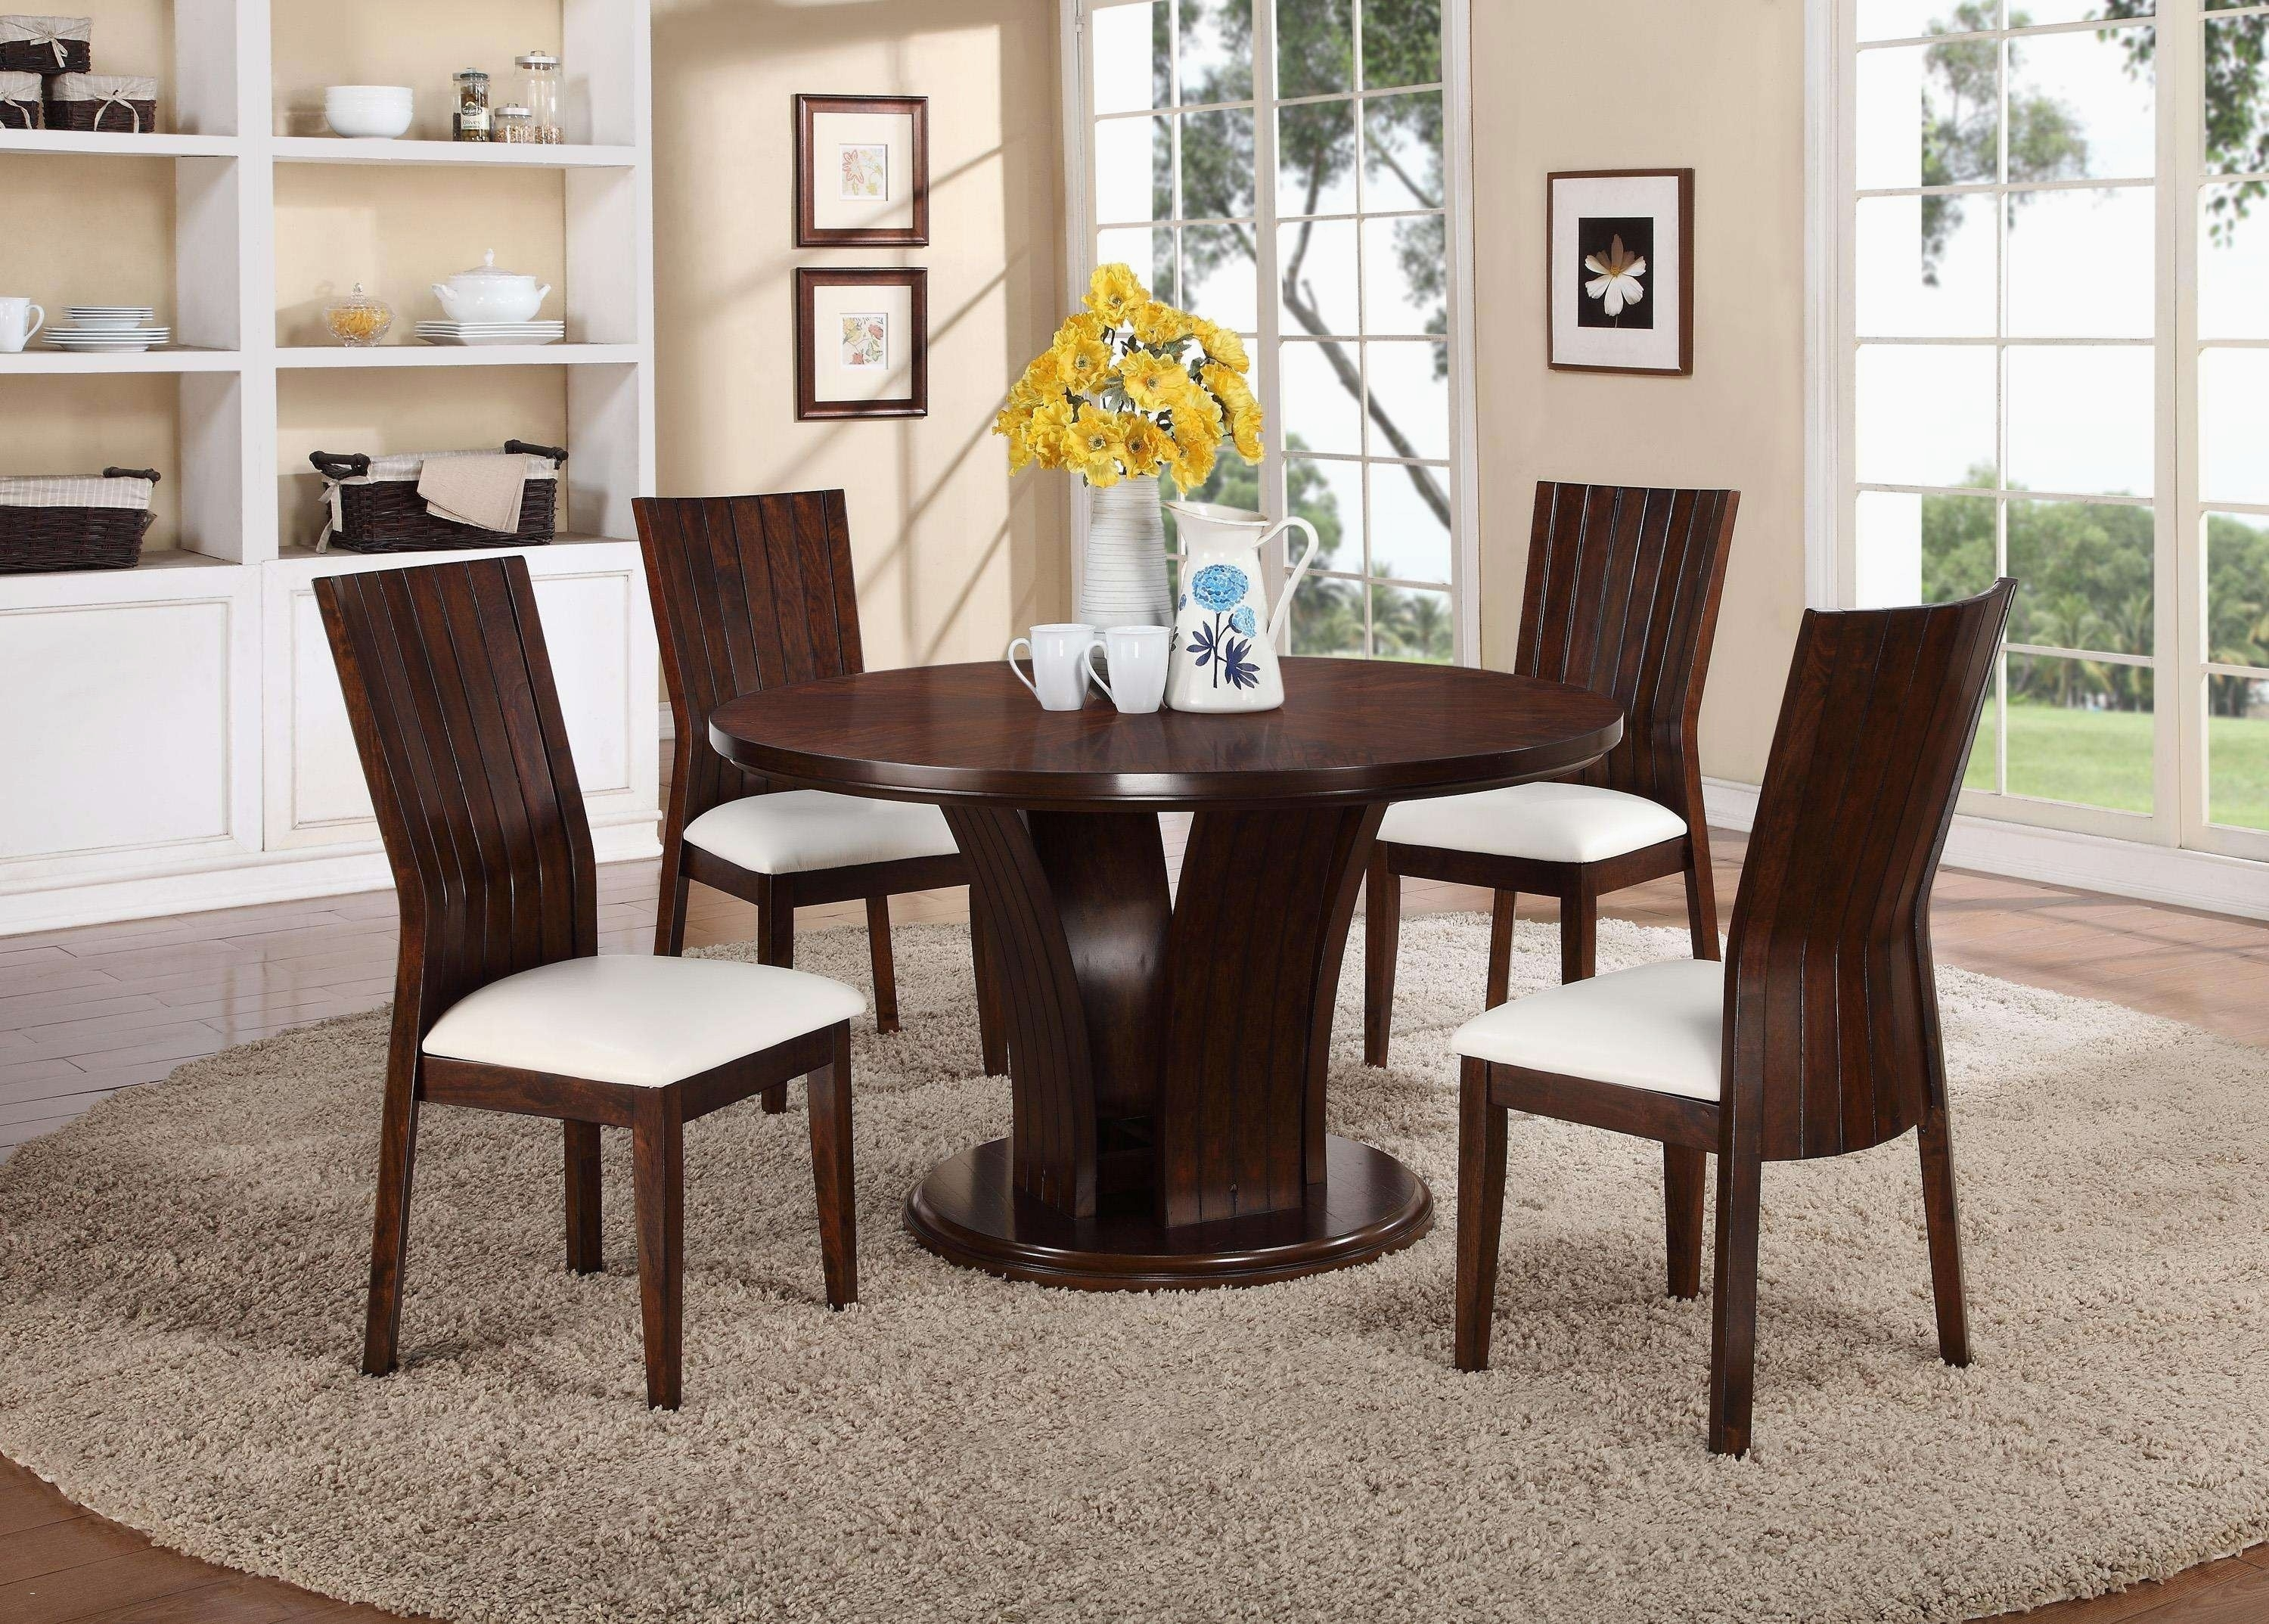 Elegant Amish Dining Room Tables At Amish Outdoor Furniture Fresh Od With Regard To Recent Patterson 6 Piece Dining Sets (Image 10 of 20)